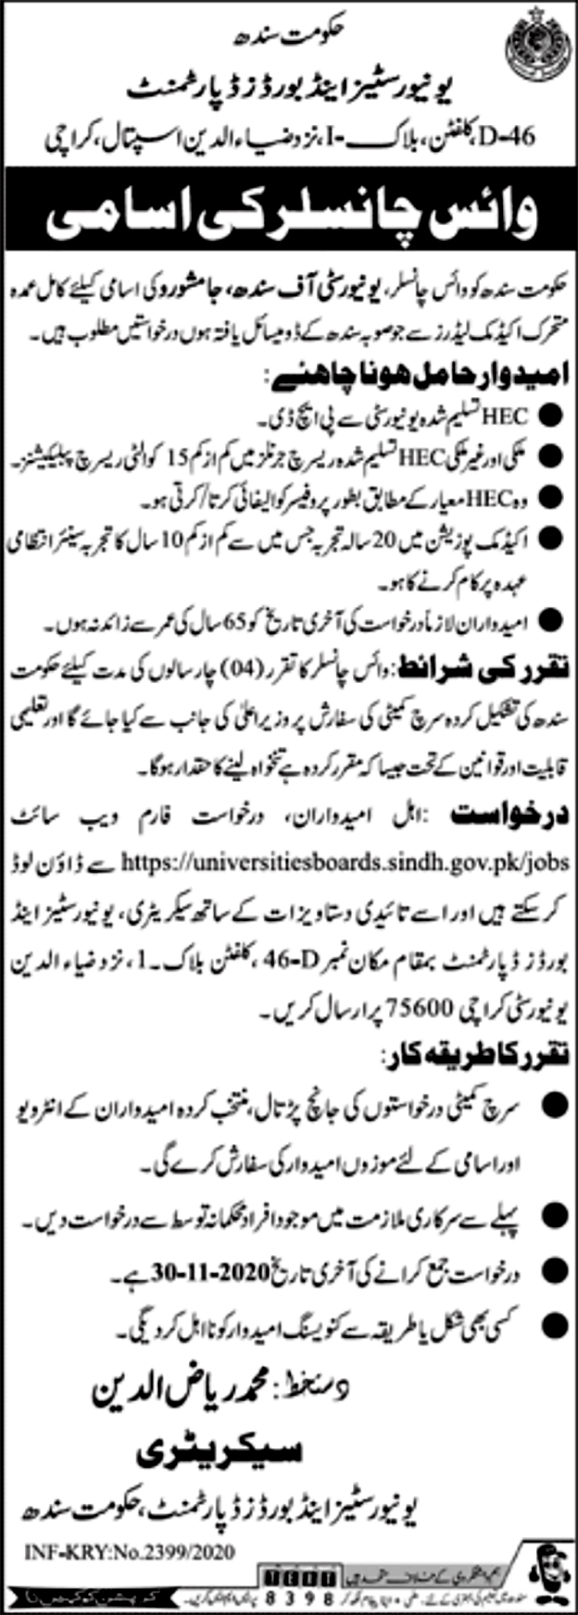 JOBS | Universities and Boards Department, Government of Sindh